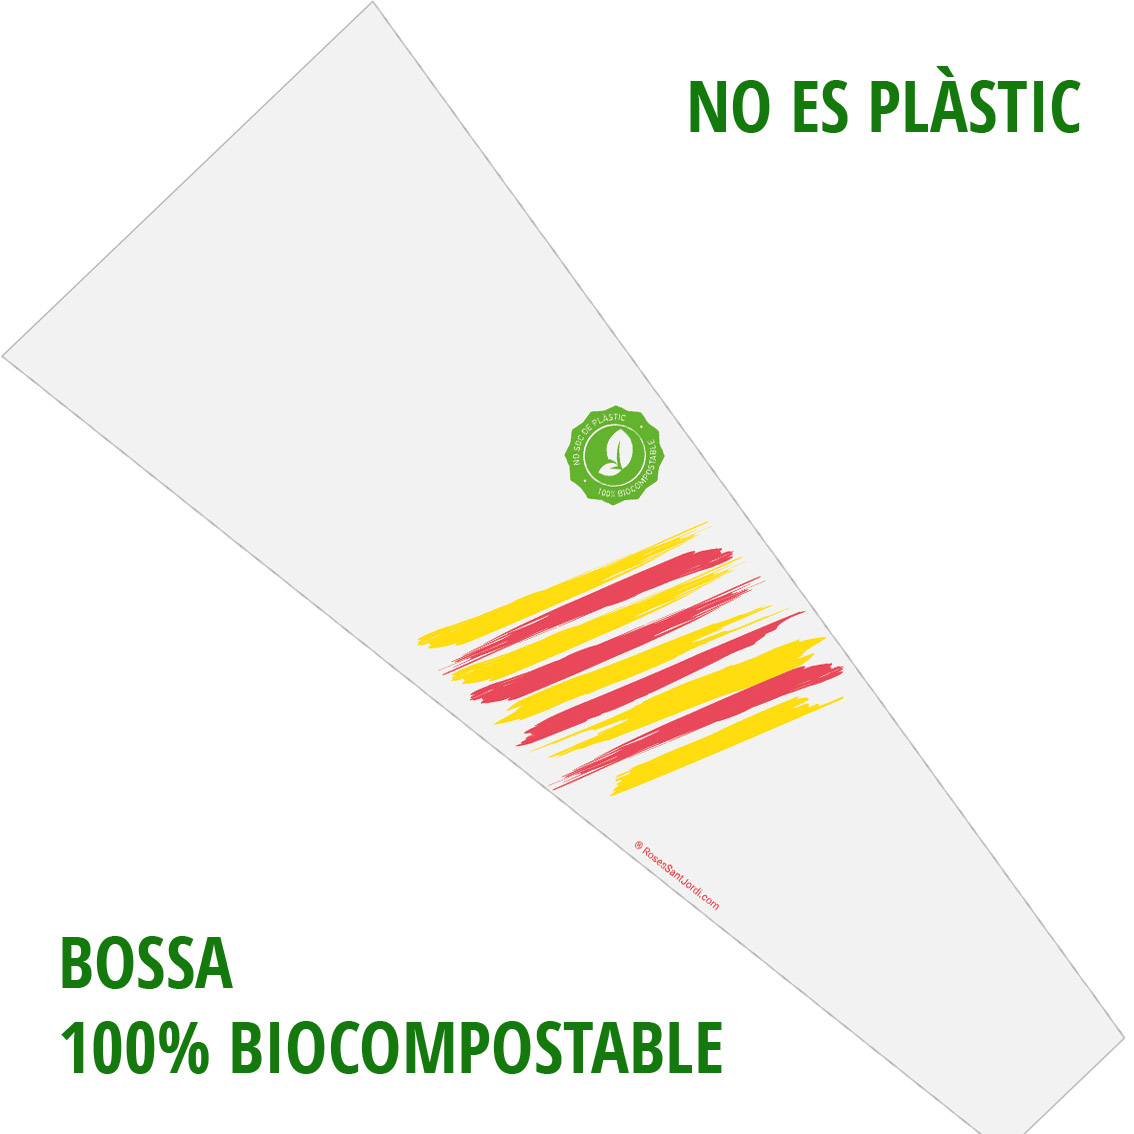 Bossa roses Sant Jordi Biocompostable